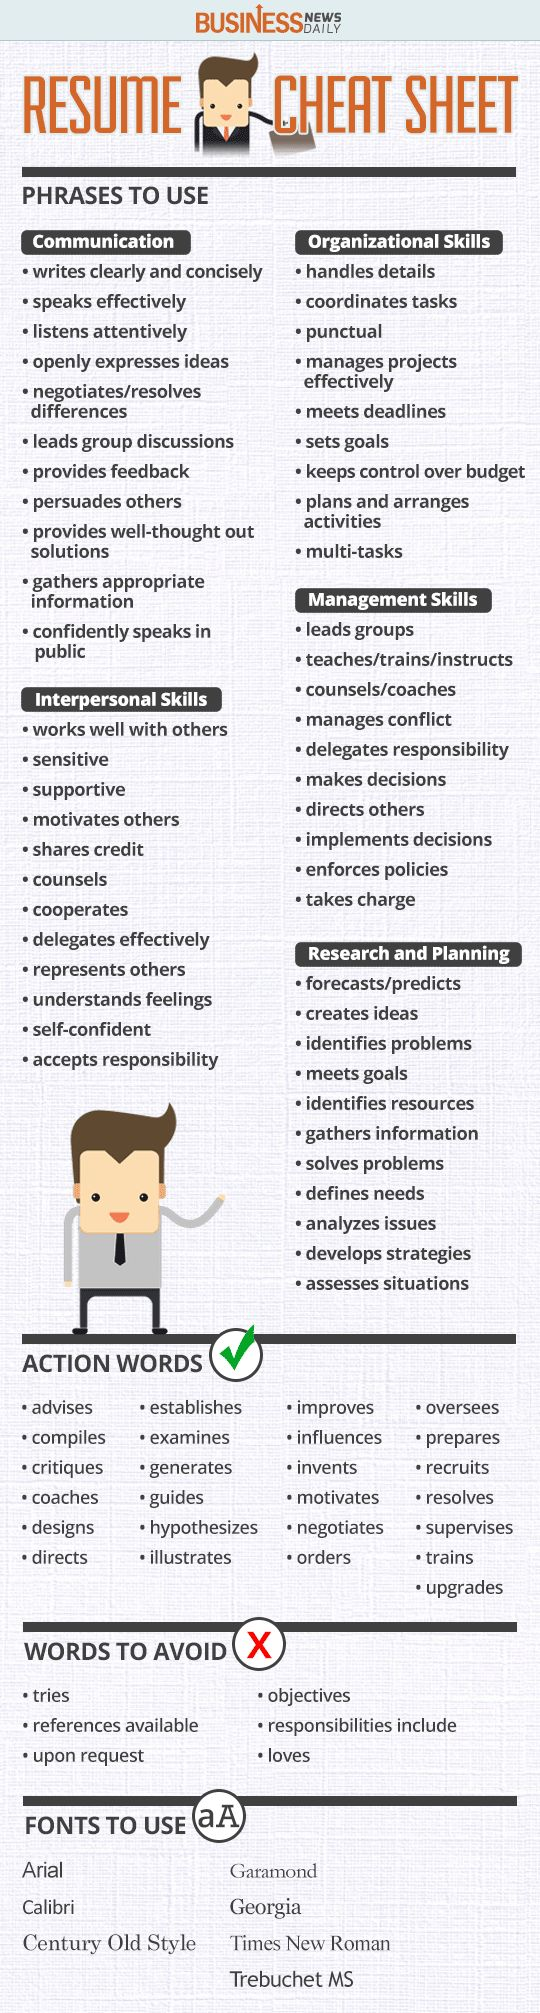 Opposenewapstandardsus  Seductive  Ideas About Resume On Pinterest  Cv Format Resume Cv And  With Marvelous Resume Cheat Sheet Infographic Andrews Almost Done With A Complete Unit On Employment Which With Beauteous Great Resume Also Resumate In Addition Real Estate Resume And Resume Portfolio As Well As Finance Resume Additionally Sample Nursing Resume From Pinterestcom With Opposenewapstandardsus  Marvelous  Ideas About Resume On Pinterest  Cv Format Resume Cv And  With Beauteous Resume Cheat Sheet Infographic Andrews Almost Done With A Complete Unit On Employment Which And Seductive Great Resume Also Resumate In Addition Real Estate Resume From Pinterestcom